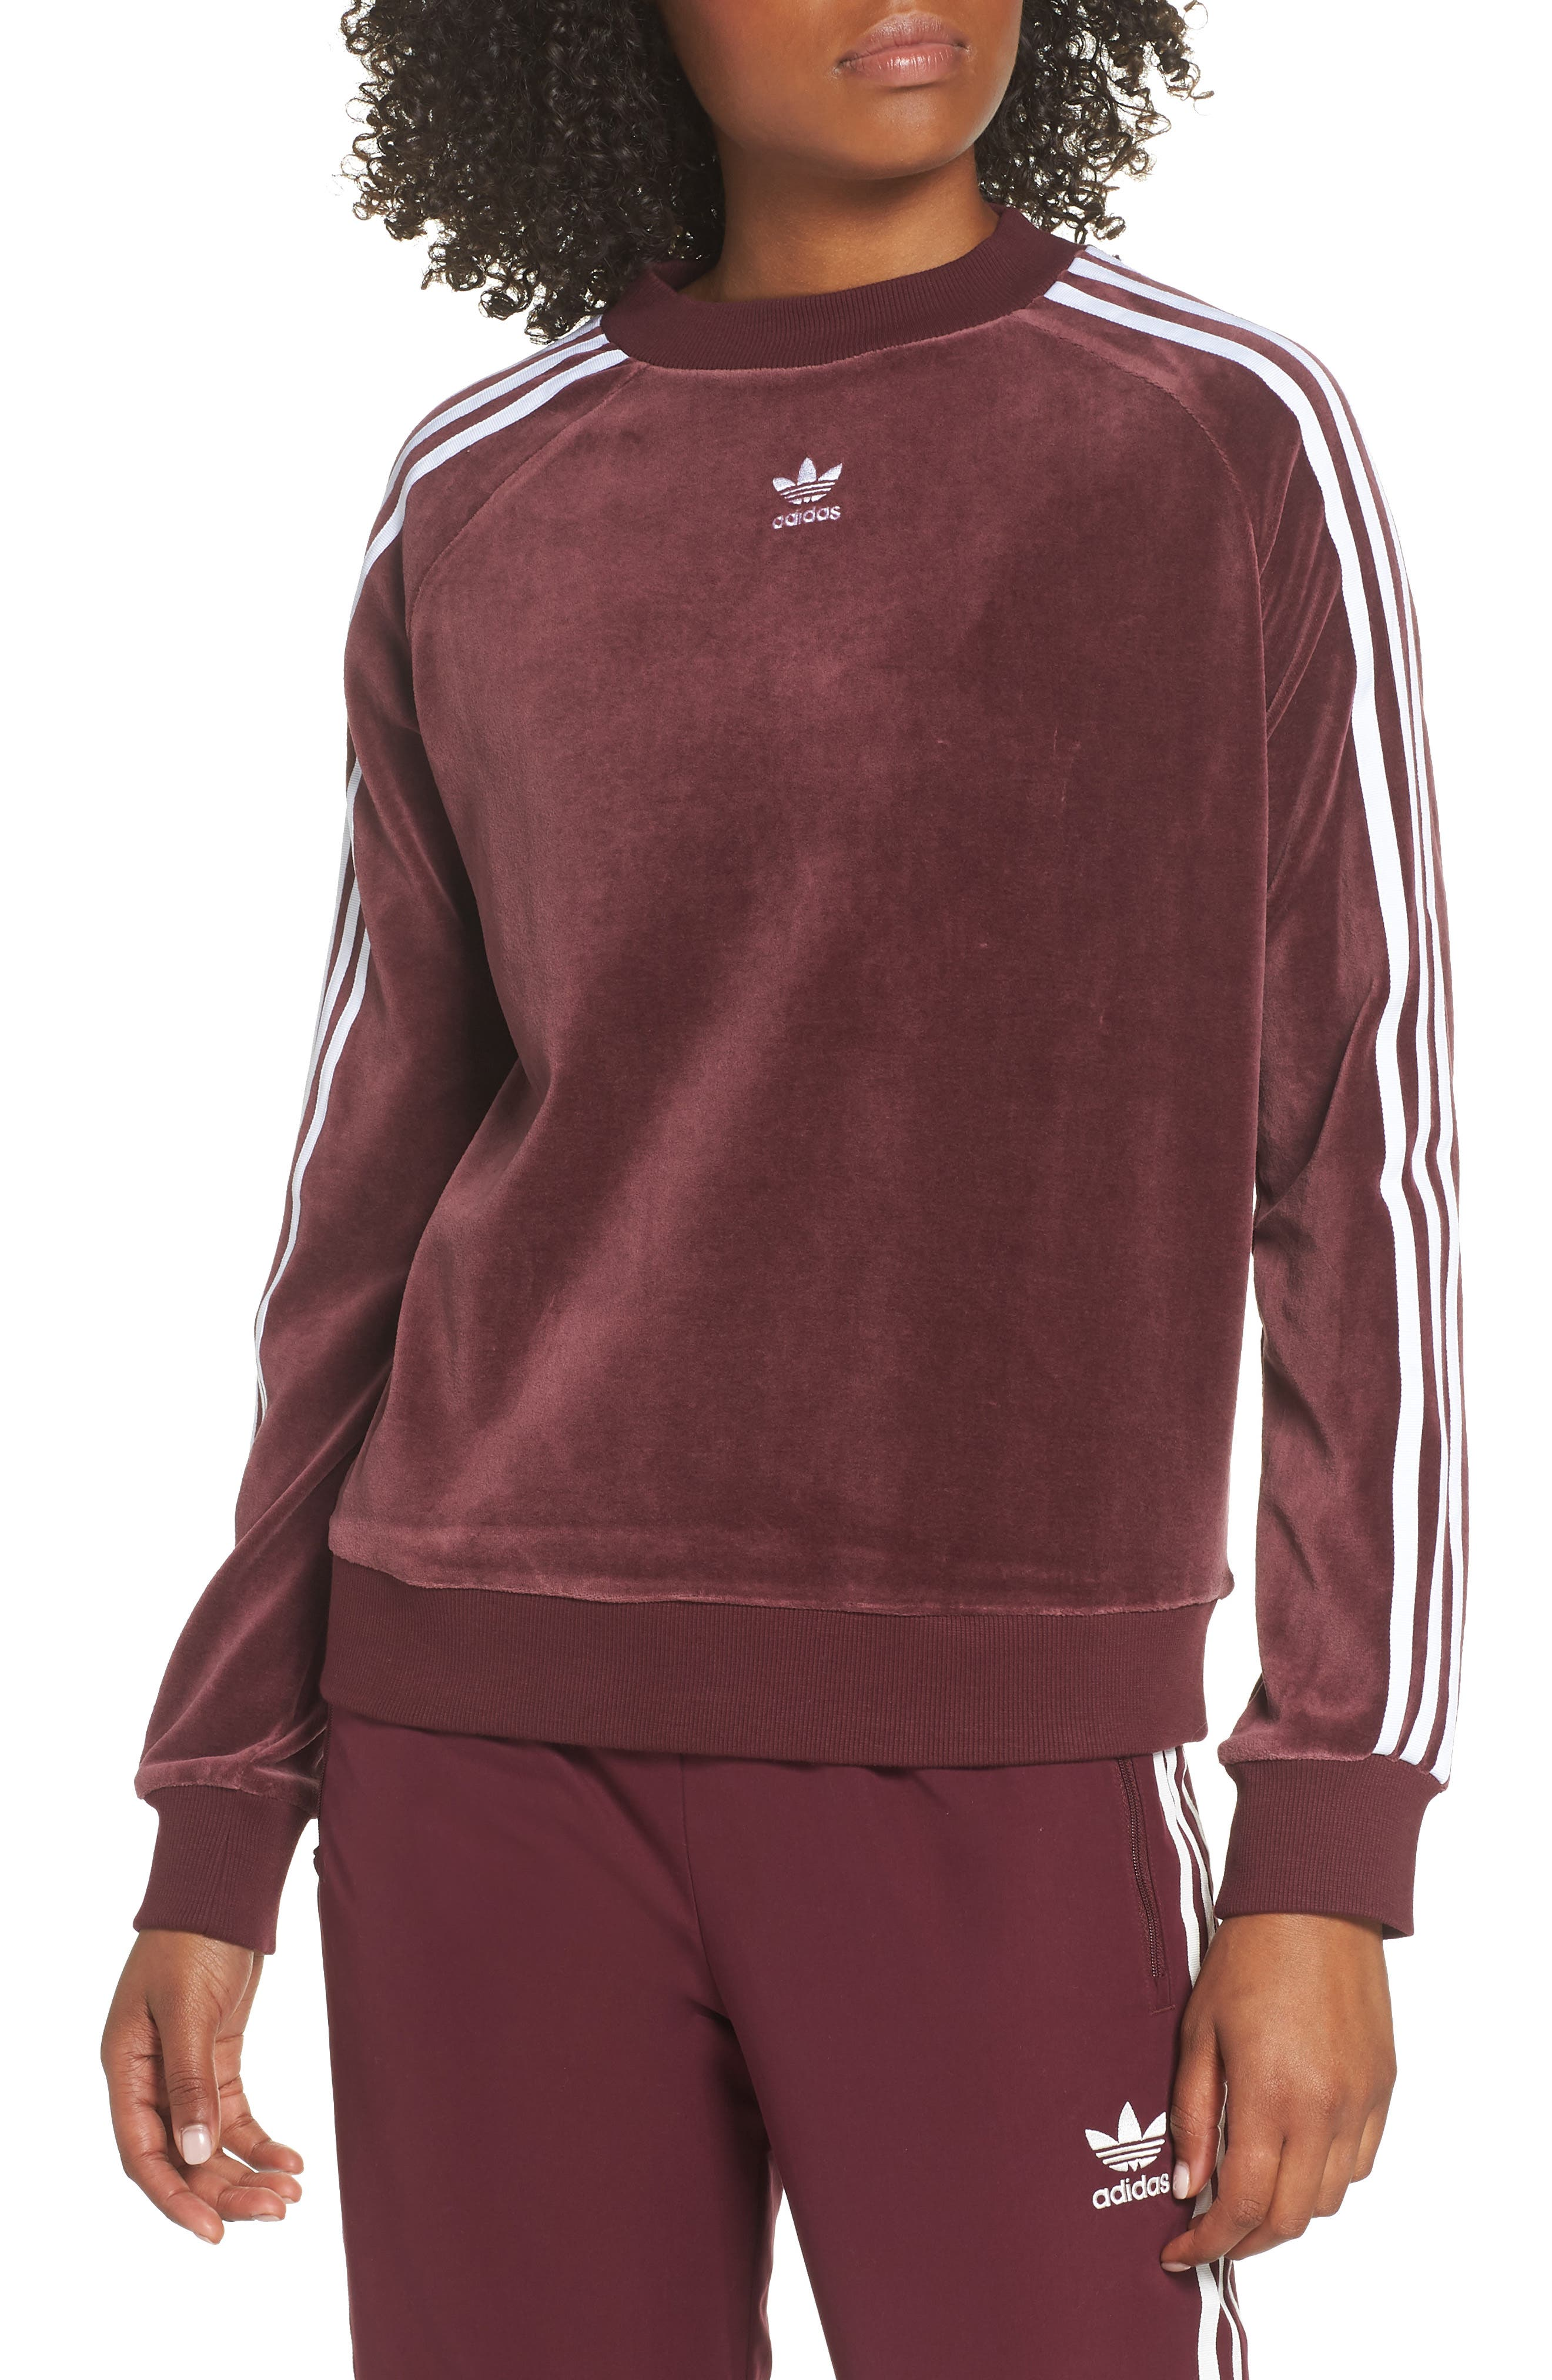 TRF Sweatshirt,                         Main,                         color, MAROON